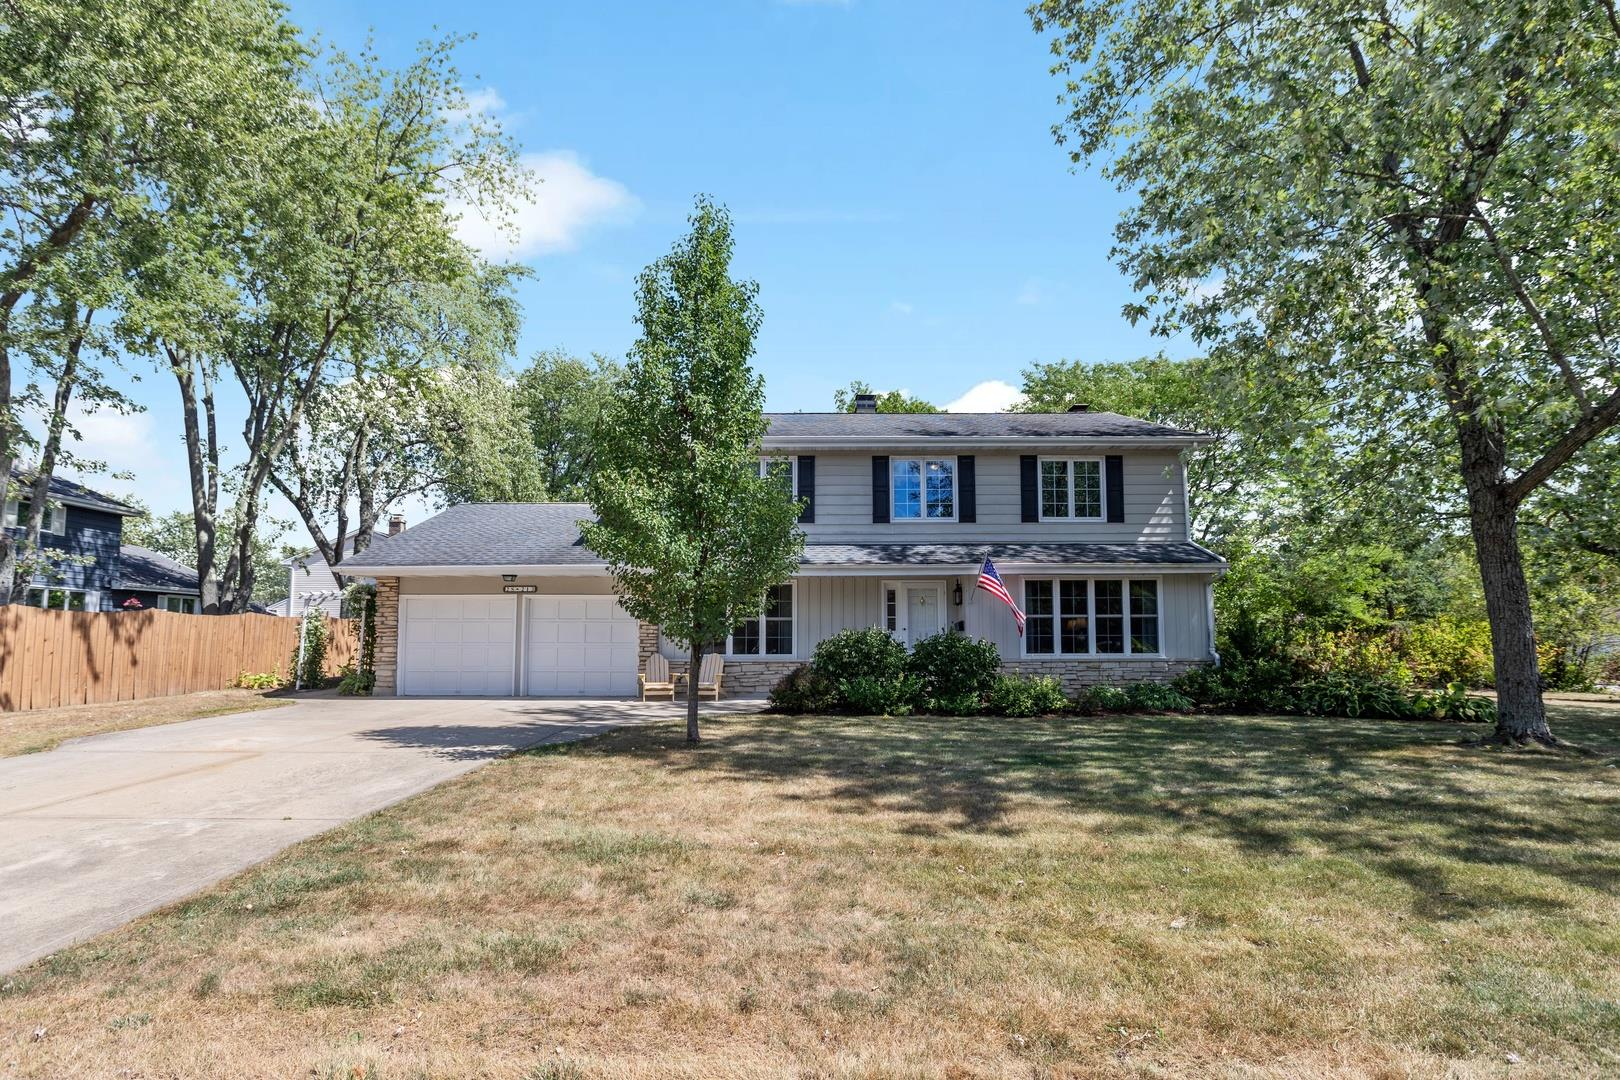 2S213 Sheffield Road, Glen Ellyn, IL 60137 - #: 10848724